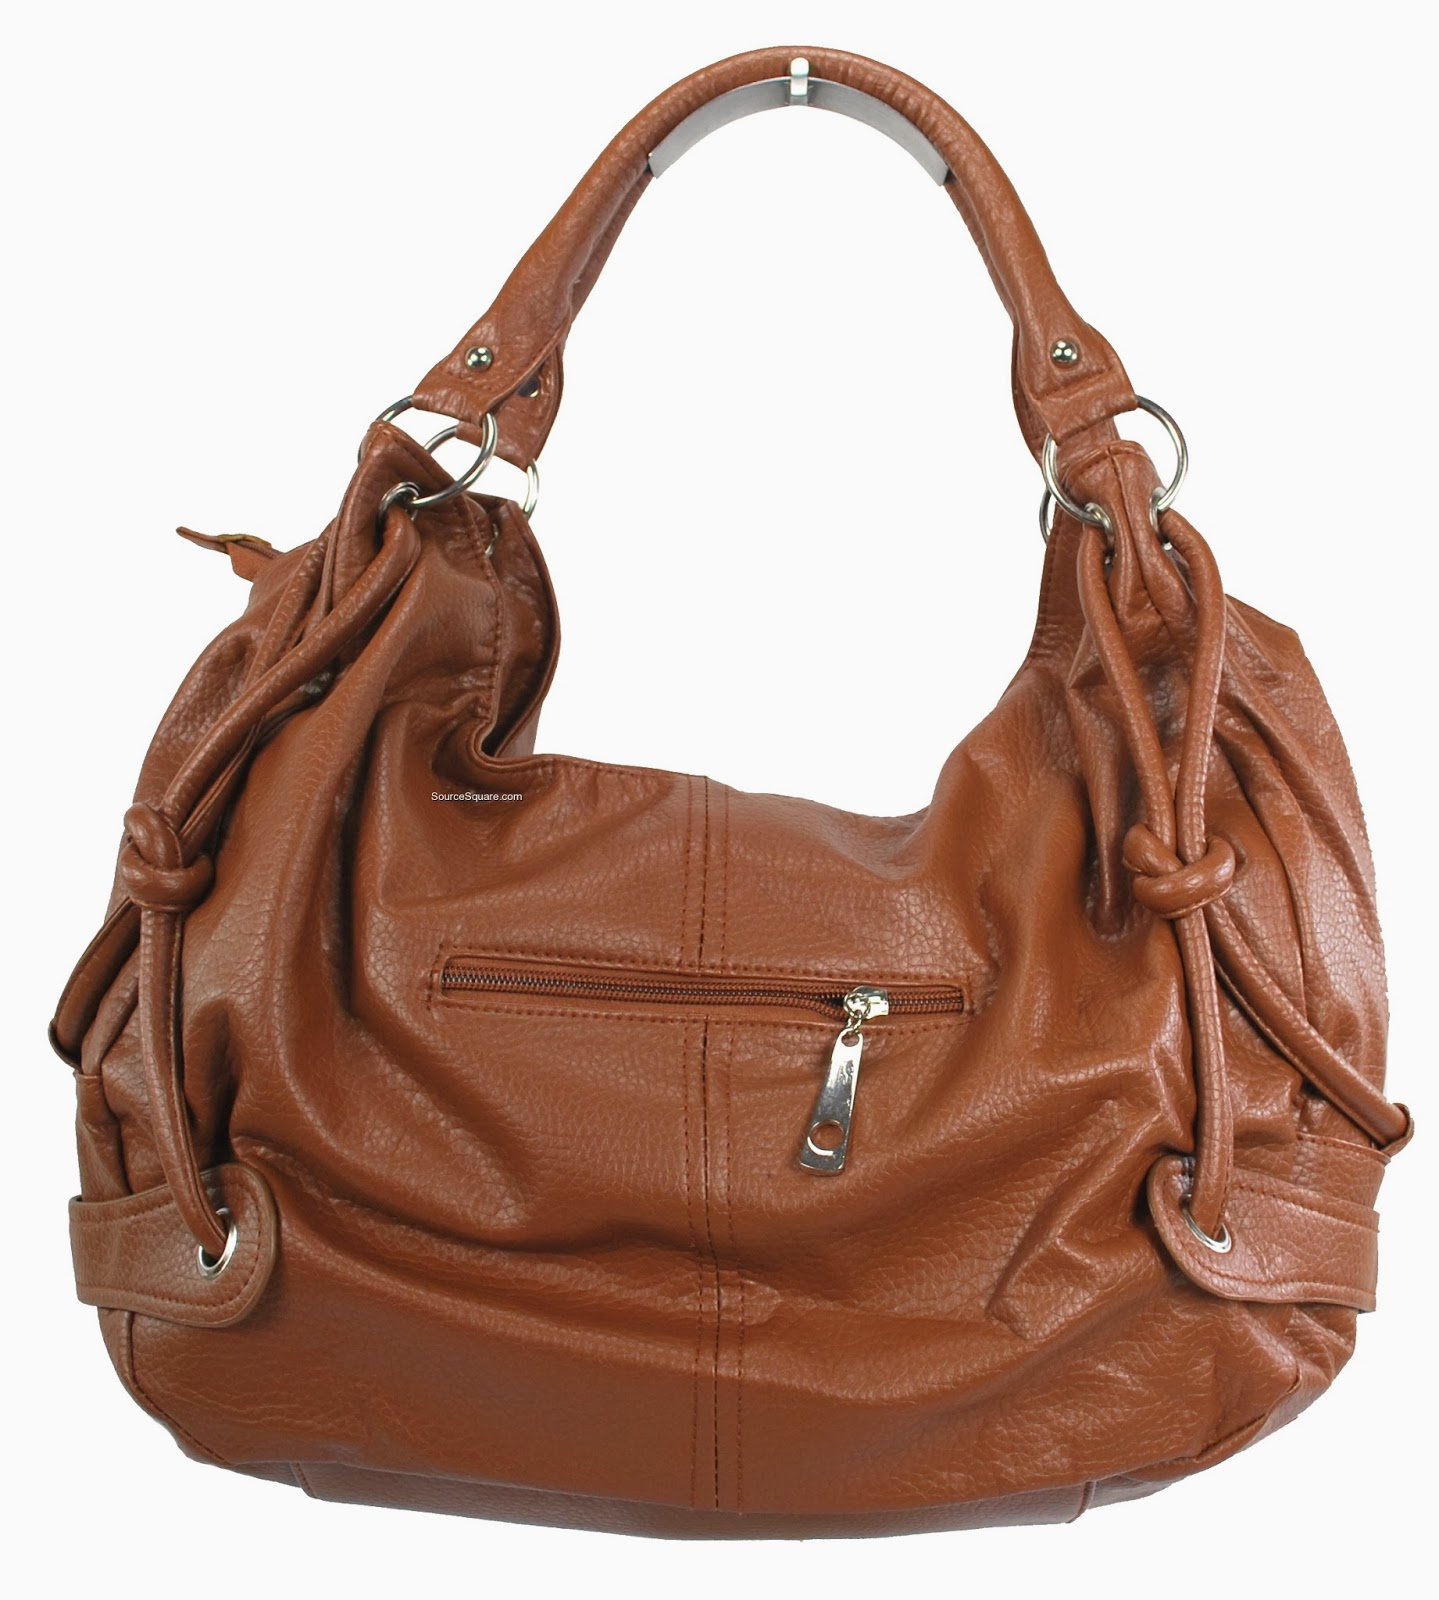 Awesome Price LowestNew 2015 Women Handbag High Quality Furly Candy Handbags